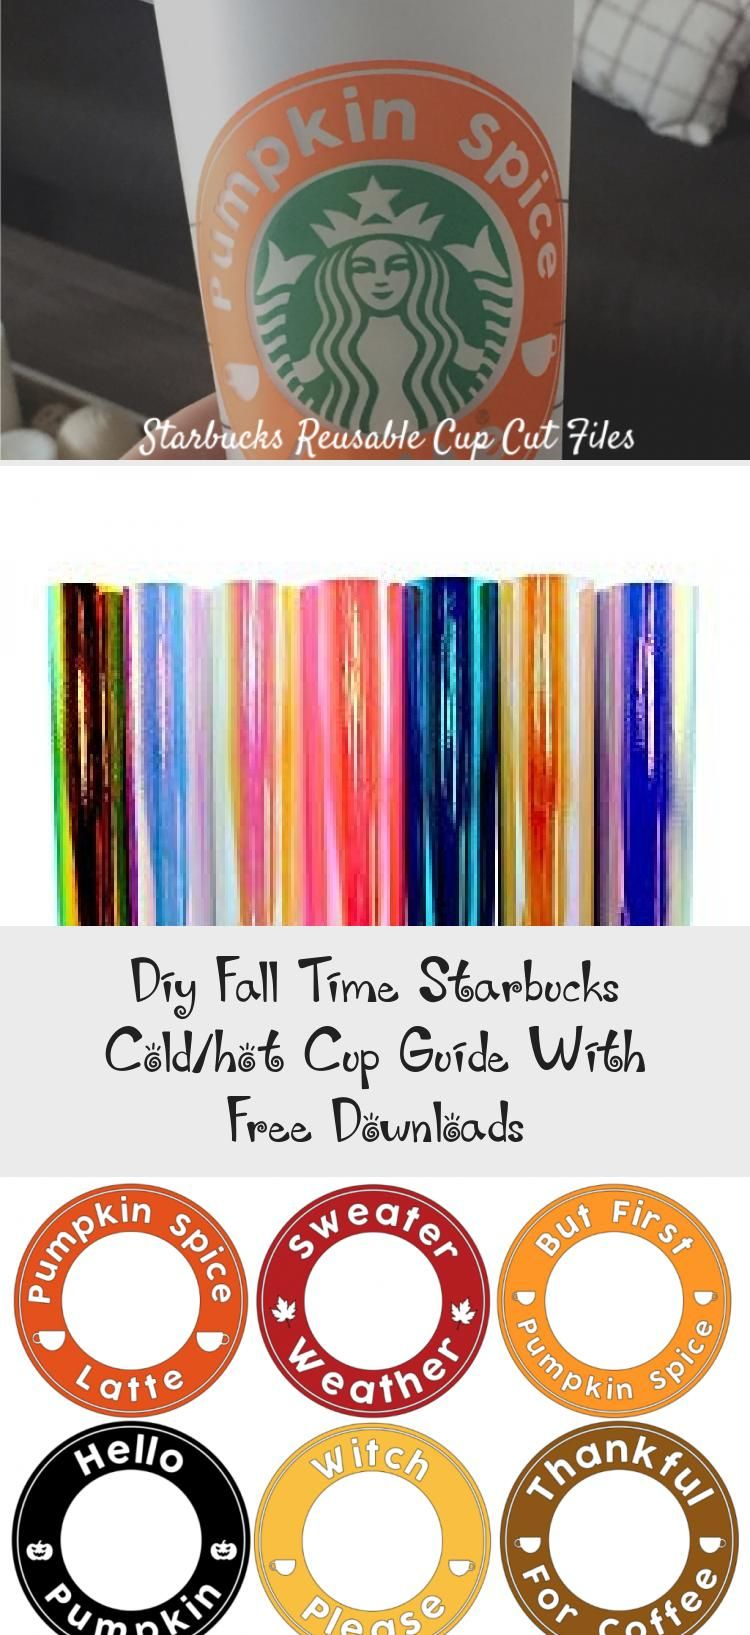 Diy Fall Time Starbucks Cold/hot Cup Guide With Free